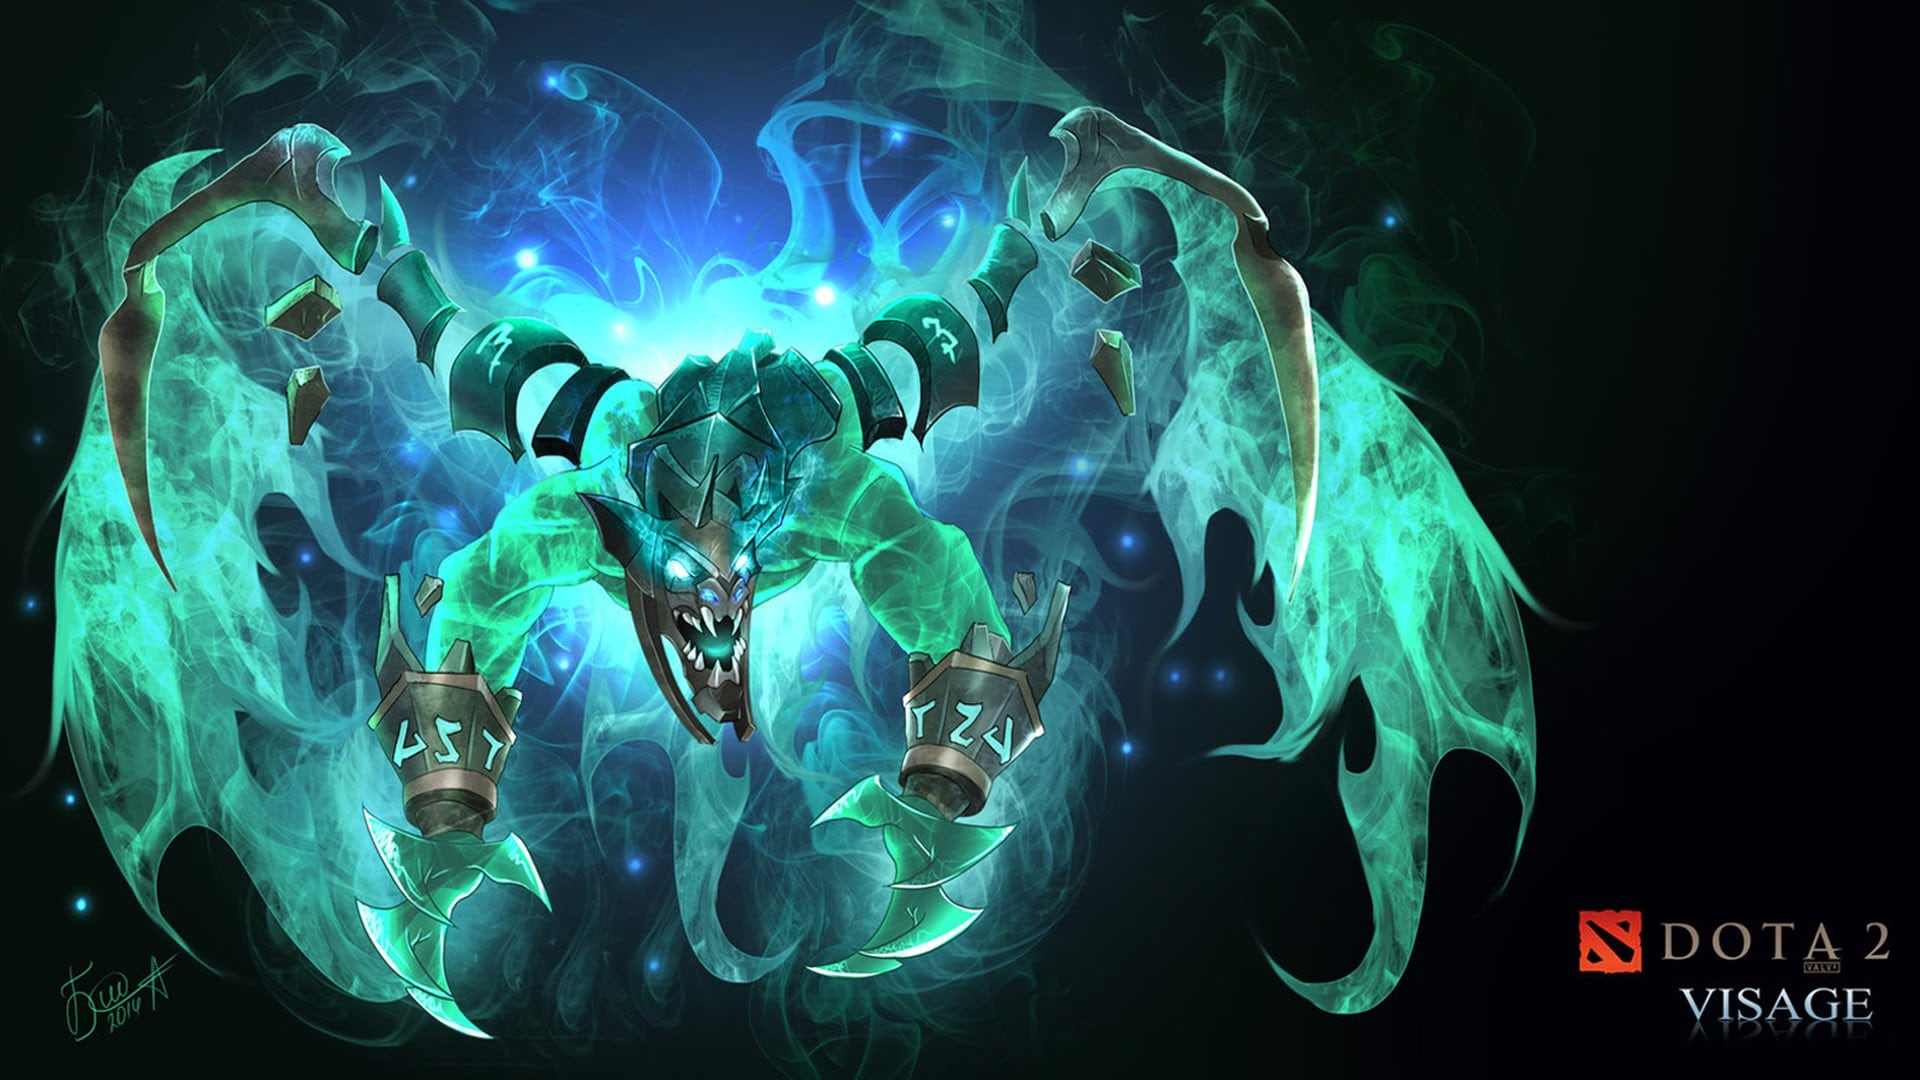 Dota 2 : Visage desktop wallpaper